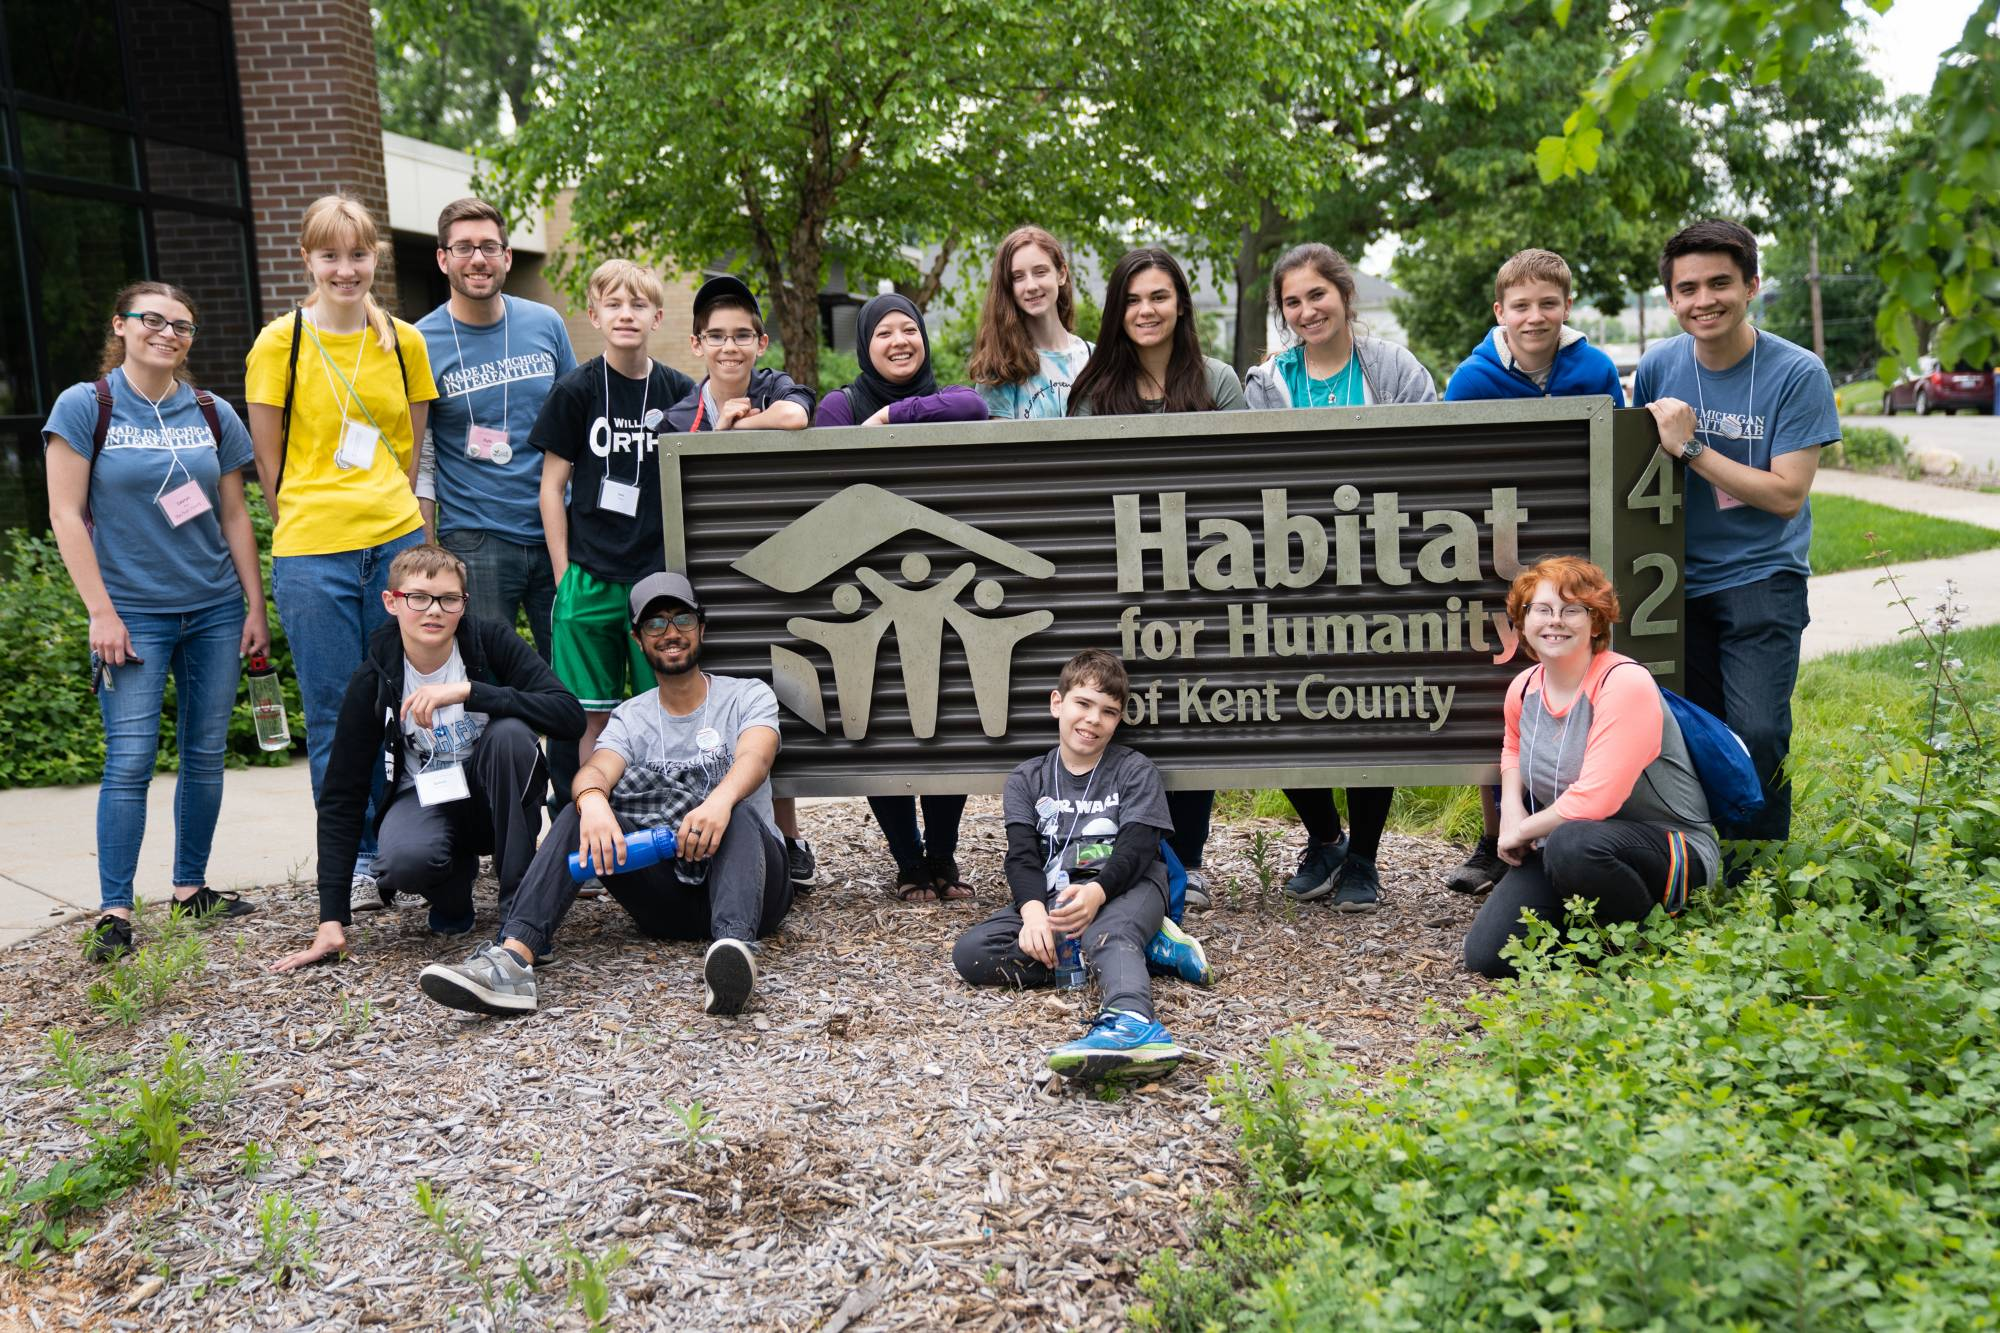 Day Camp at Habitat for Humanity